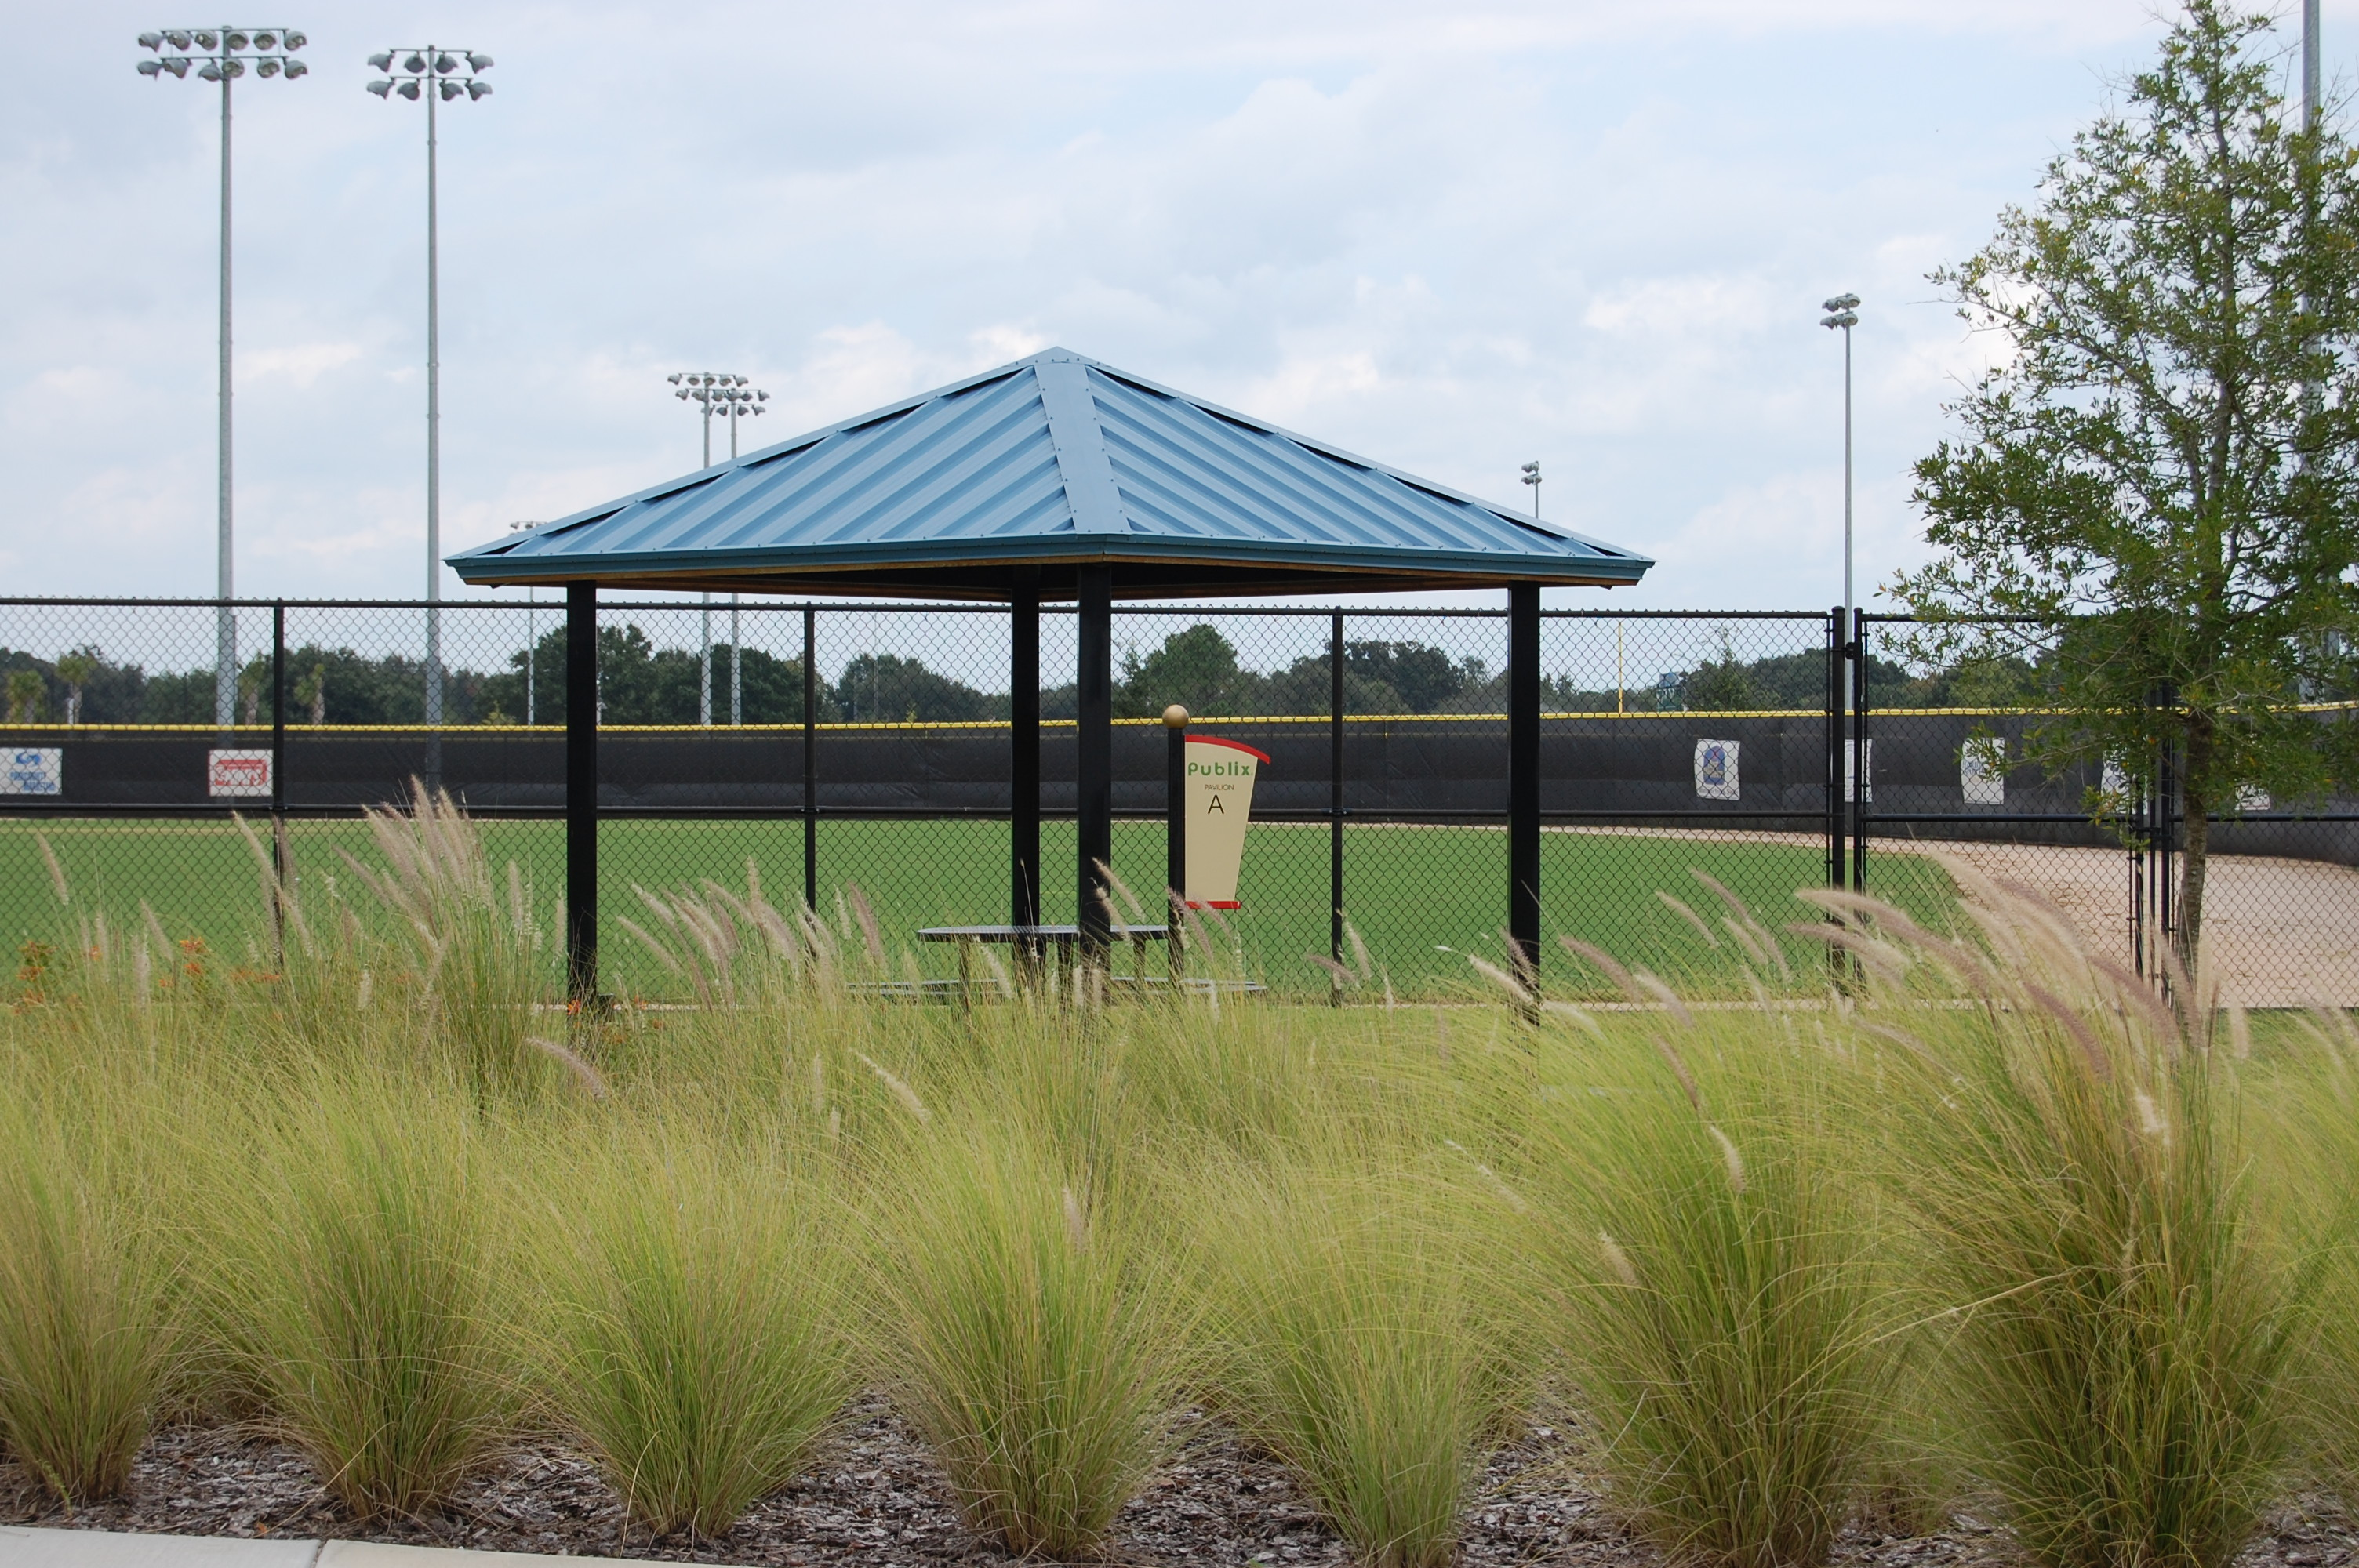 A view of the baseball fields at Lake Myrtle Sports Park